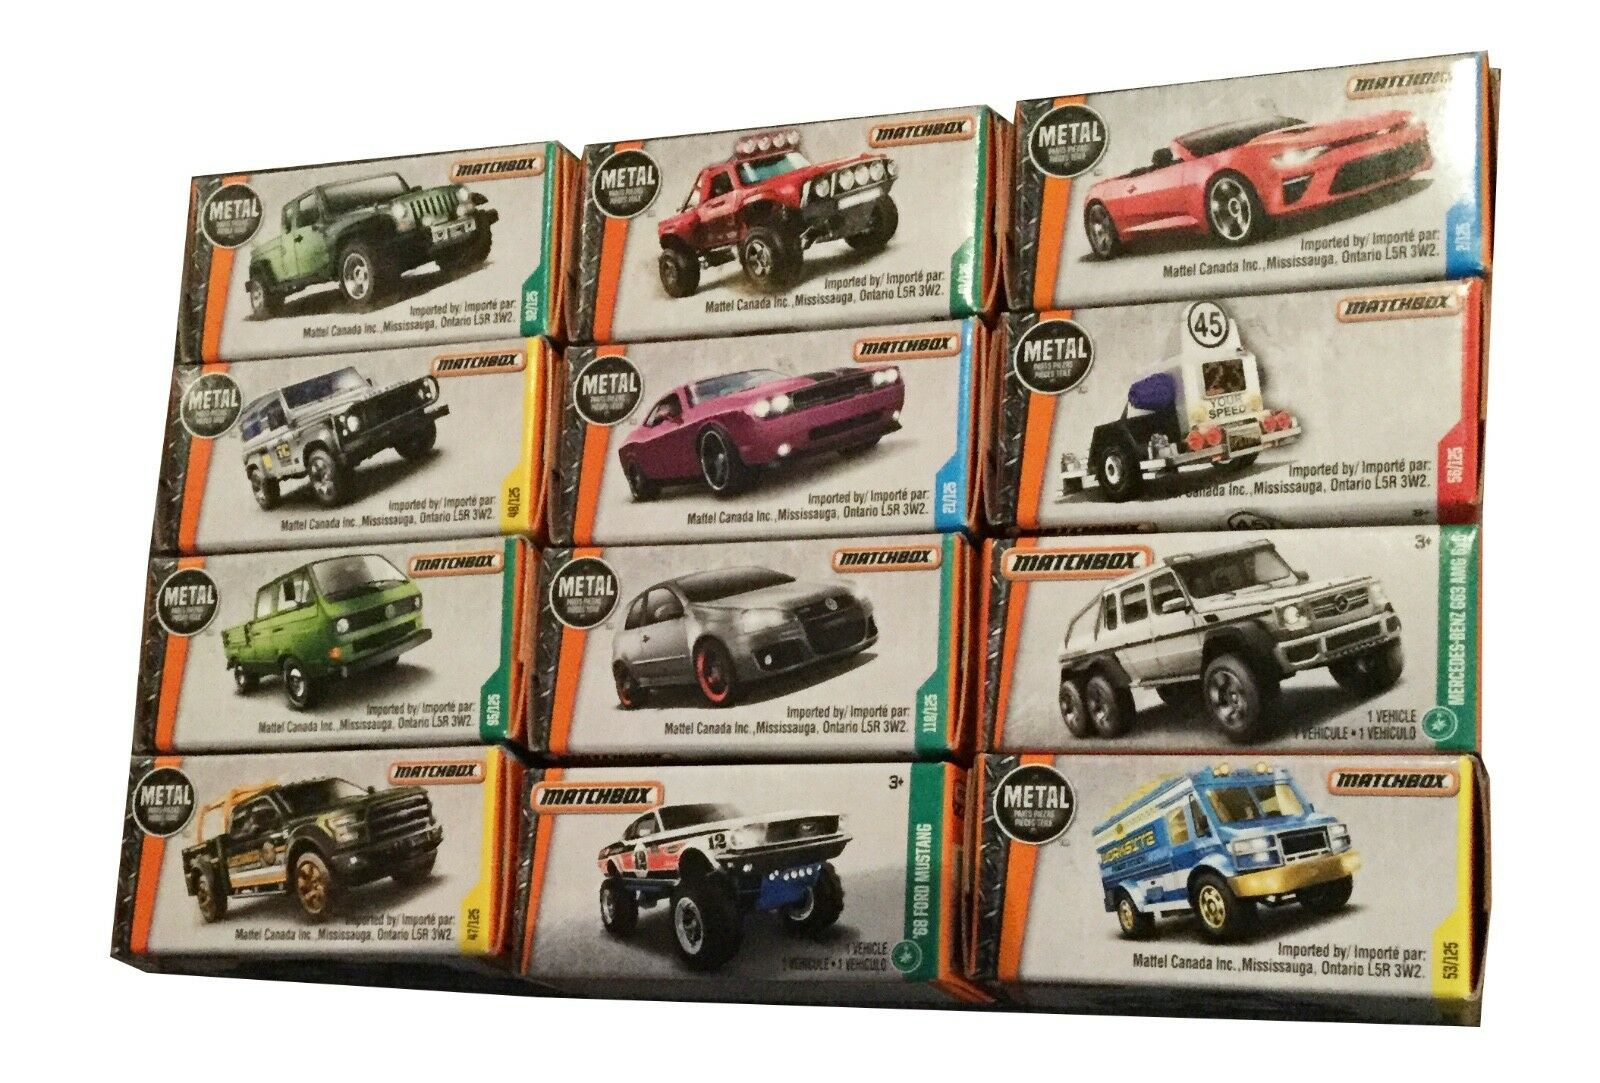 NIB Matchbox 2016 Car Collection, 12 Cars per set, see pictures for details